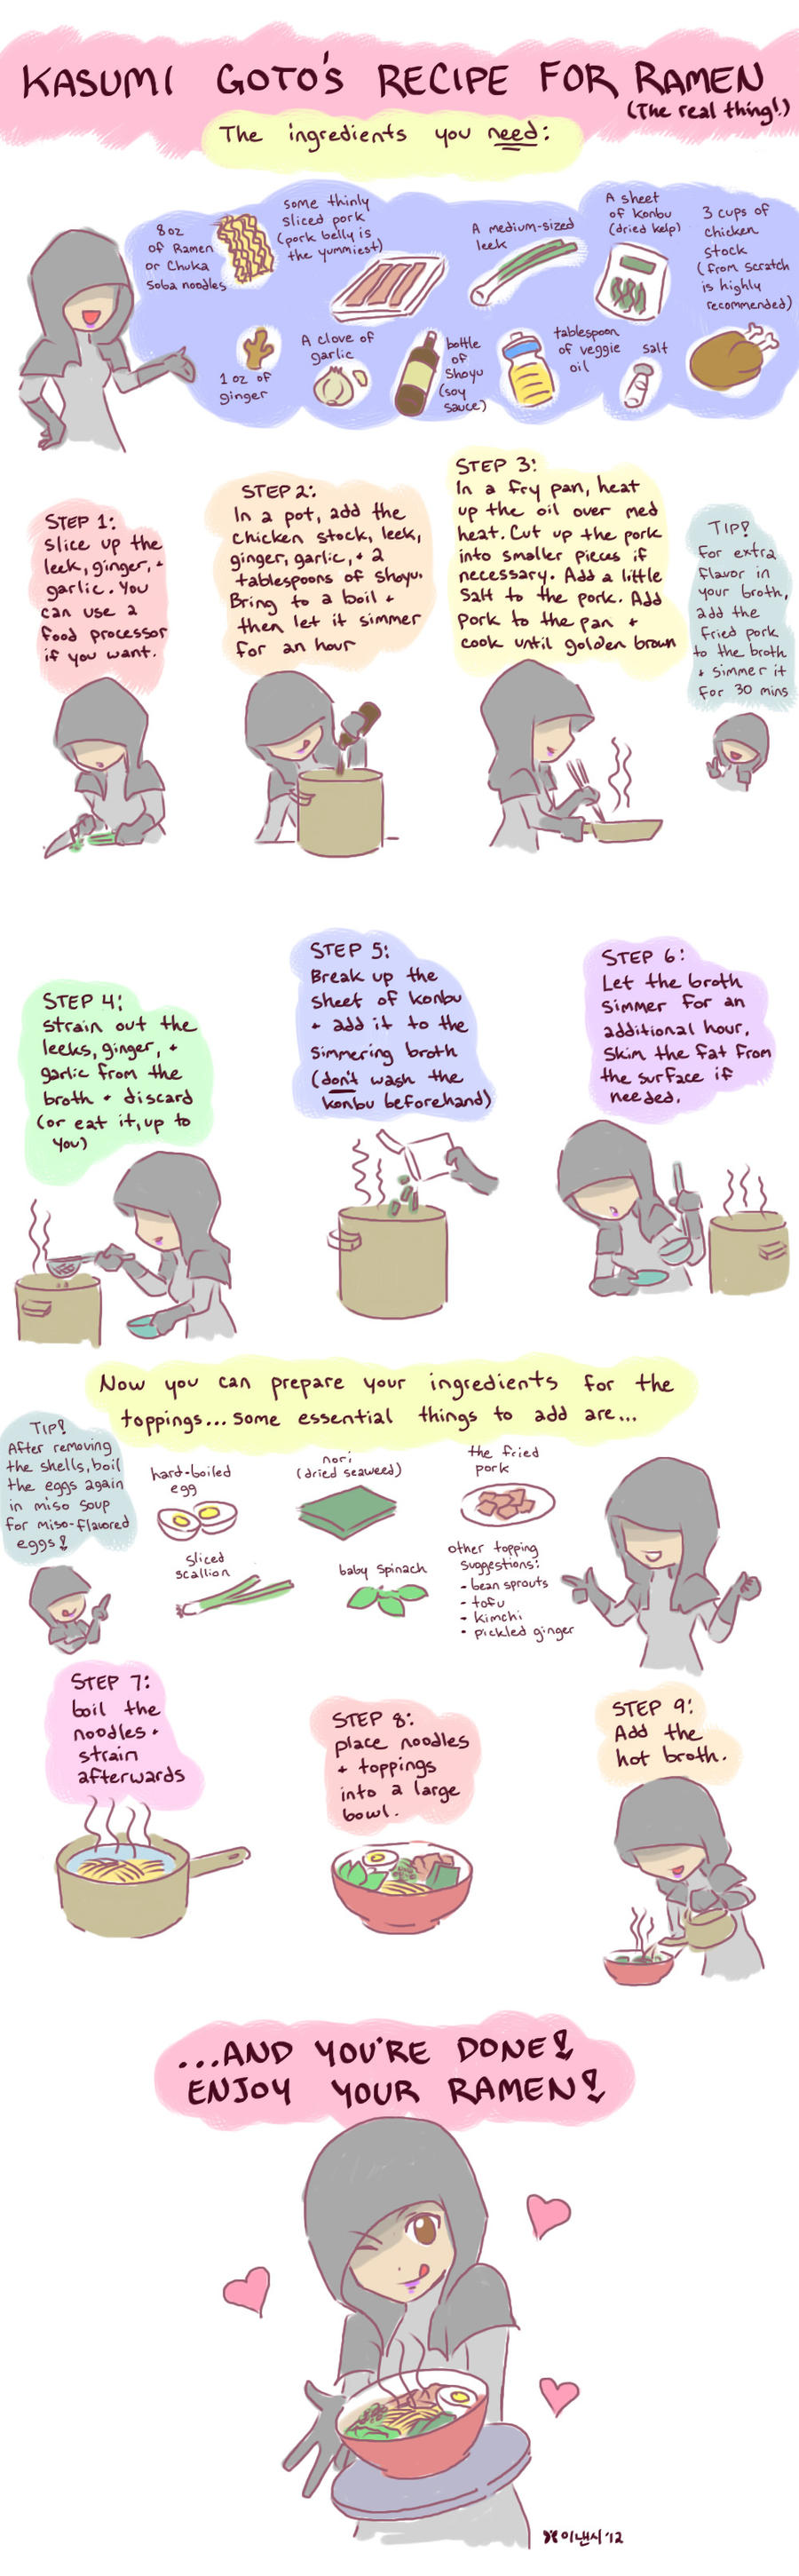 Mass Effect Food Recipes